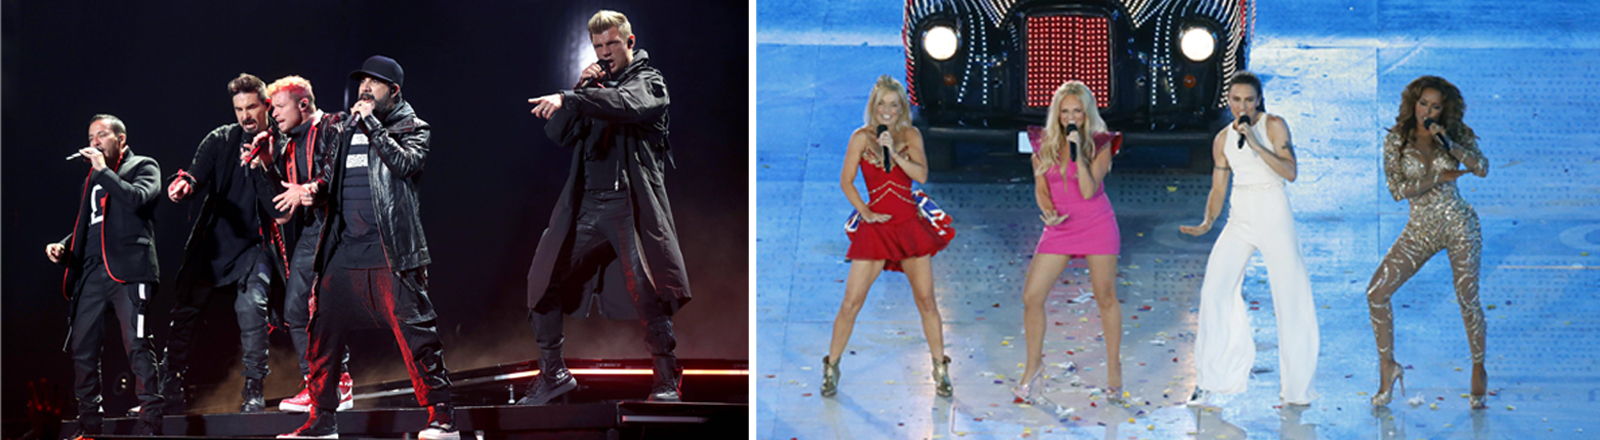 US band Backstreet Boys performs during a concert held at Palacio de los Deportes in Madrid, Spain, 13 May 2019 / The Spice Girls perform during the Closing Ceremony of the London 2012 Olympic Games